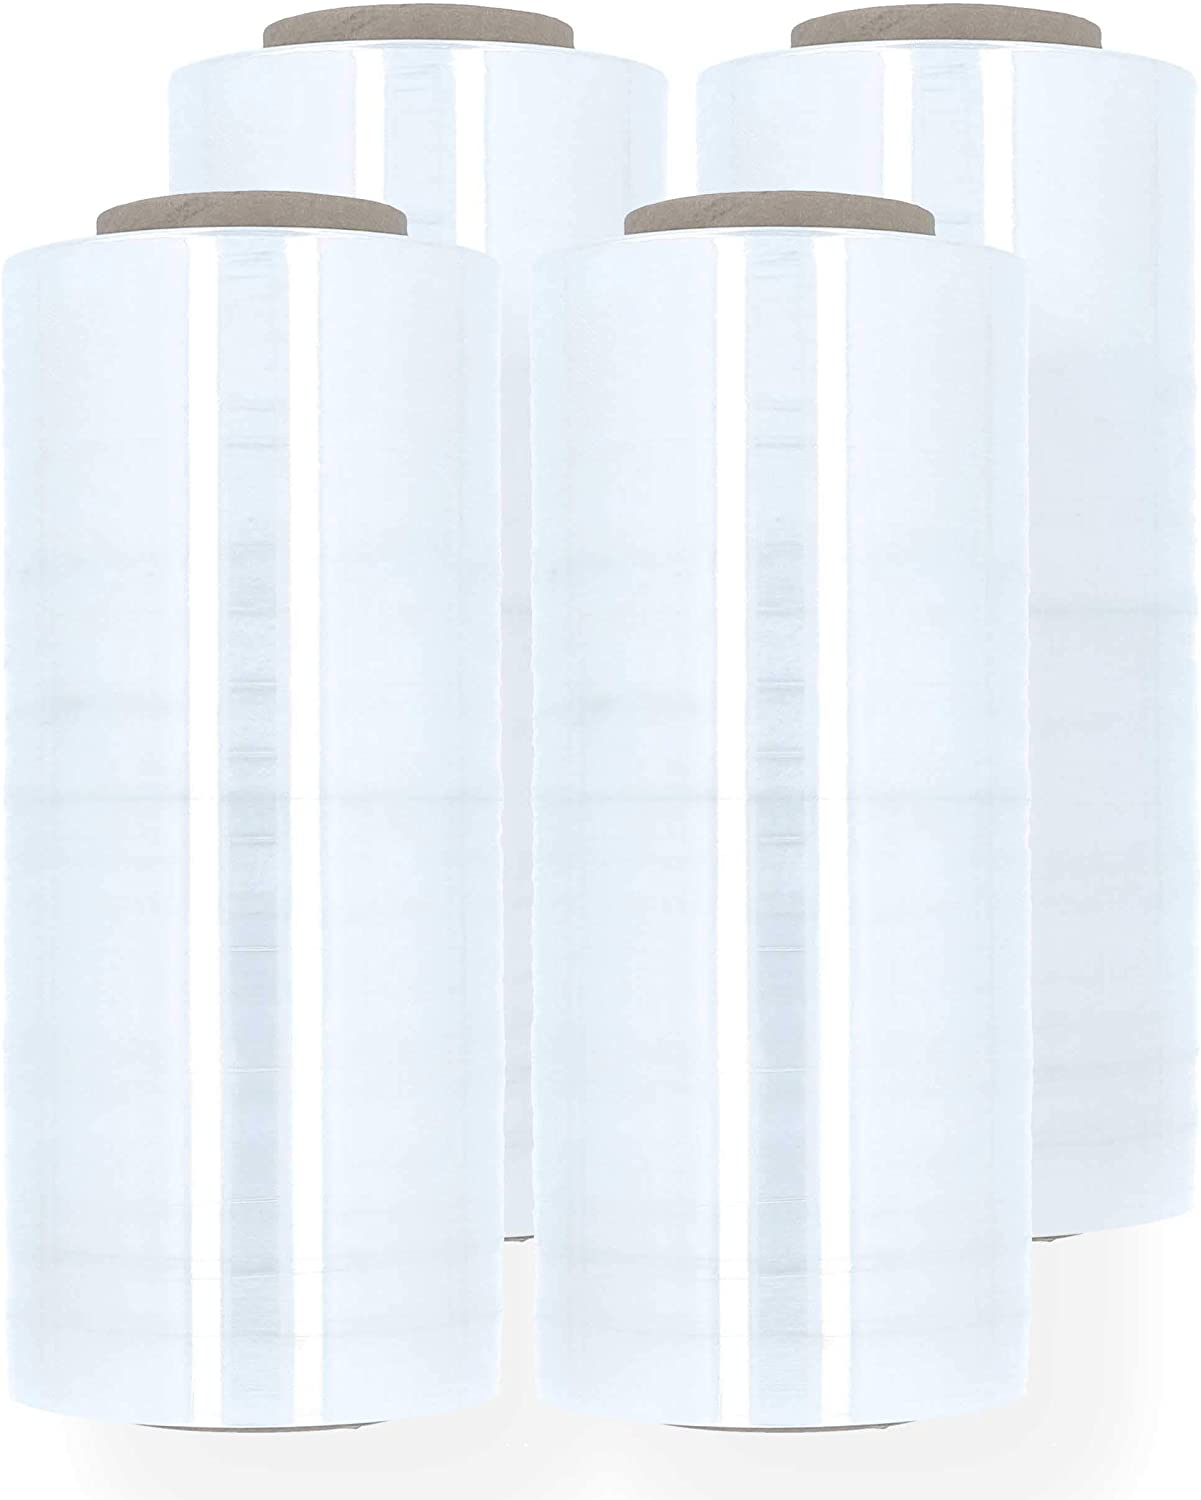 Plastic Packing Wrap Ranking integrated 1st place Blown Stretch Film x Max 69% OFF 18 Clear Inch 1000 Fe